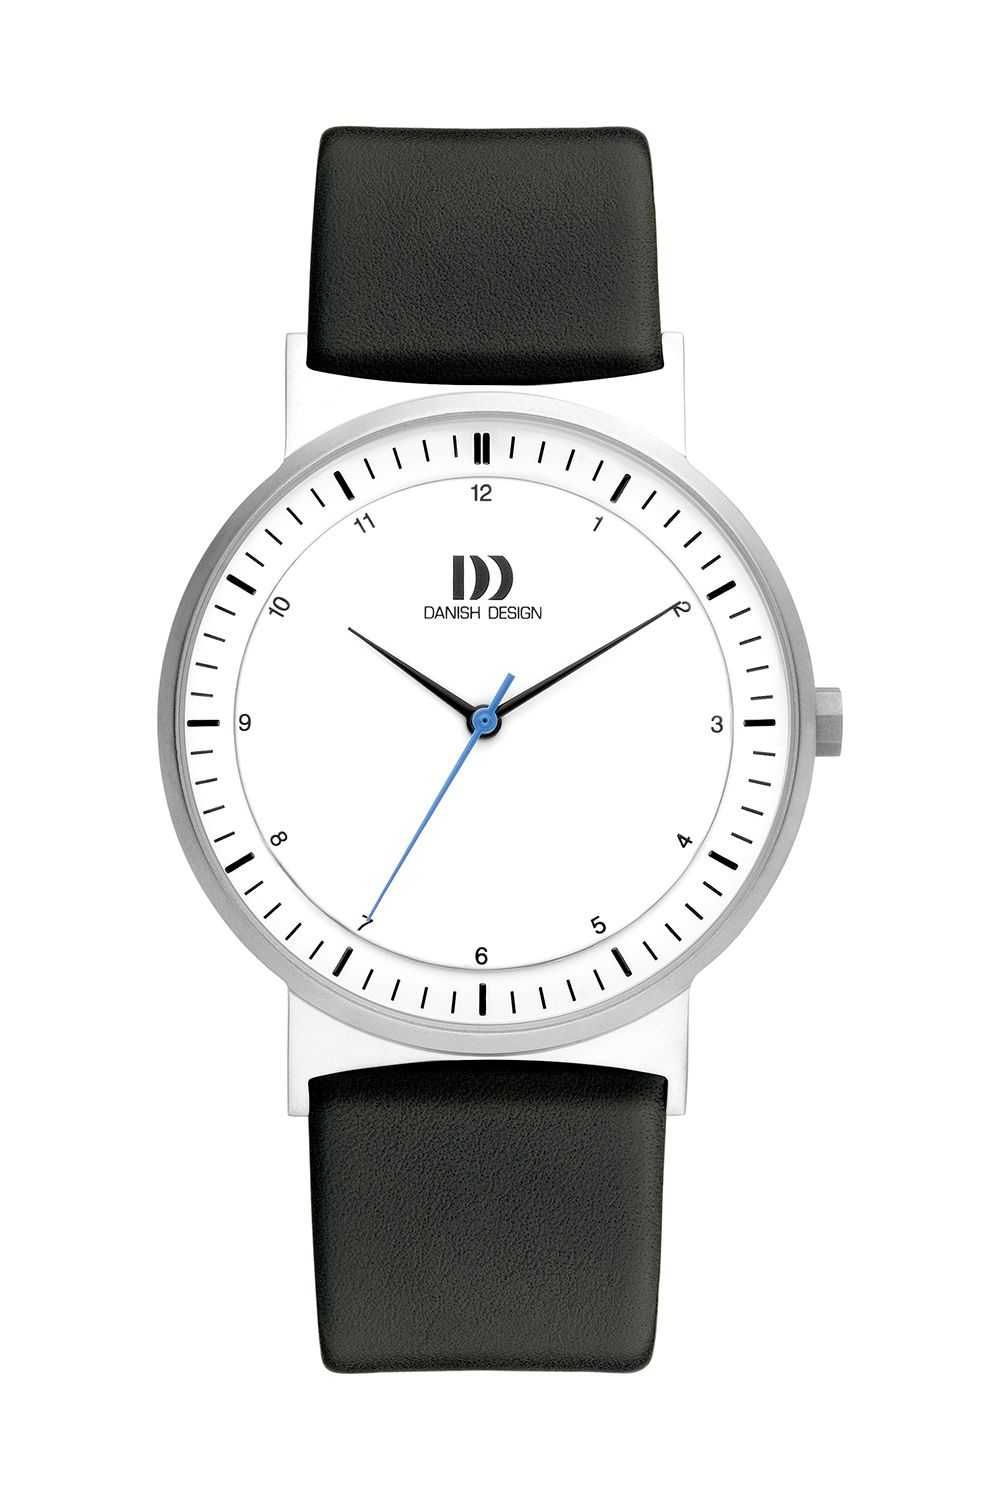 c84af2e018e Danish Design Watch IQ12Q1189 Leather Stainless Steel